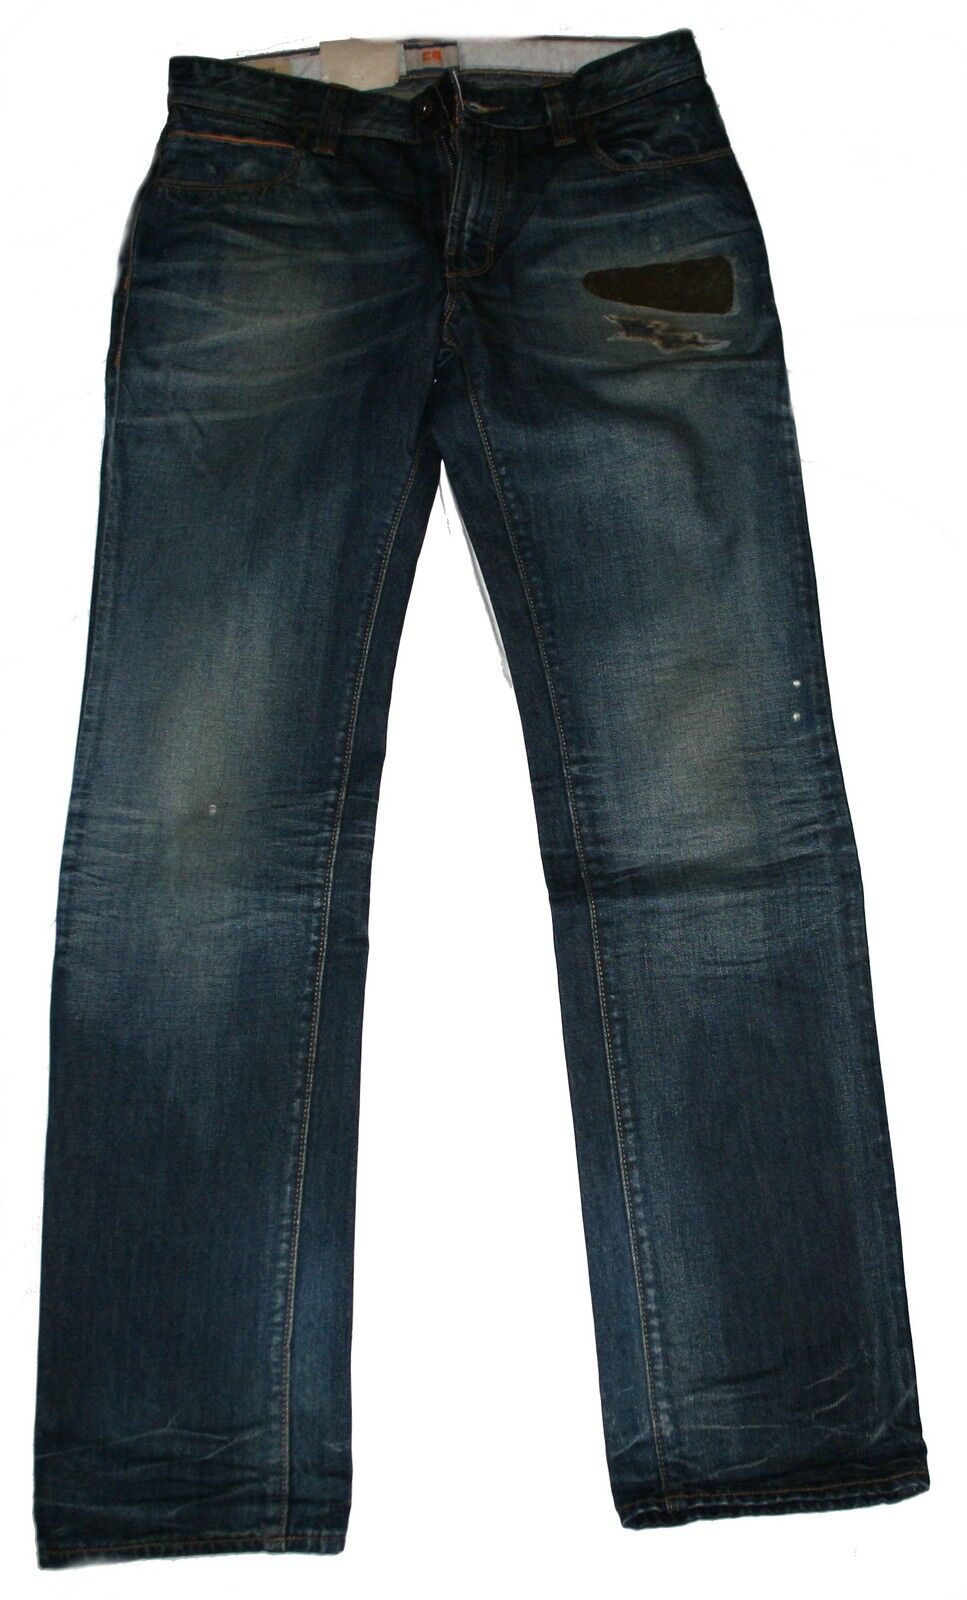 HUGO BOSS 50228390 50228390 50228390 MEDIO DENIM BLU ARANCIONE 63 Code Slim Fit jeans b0b3bb